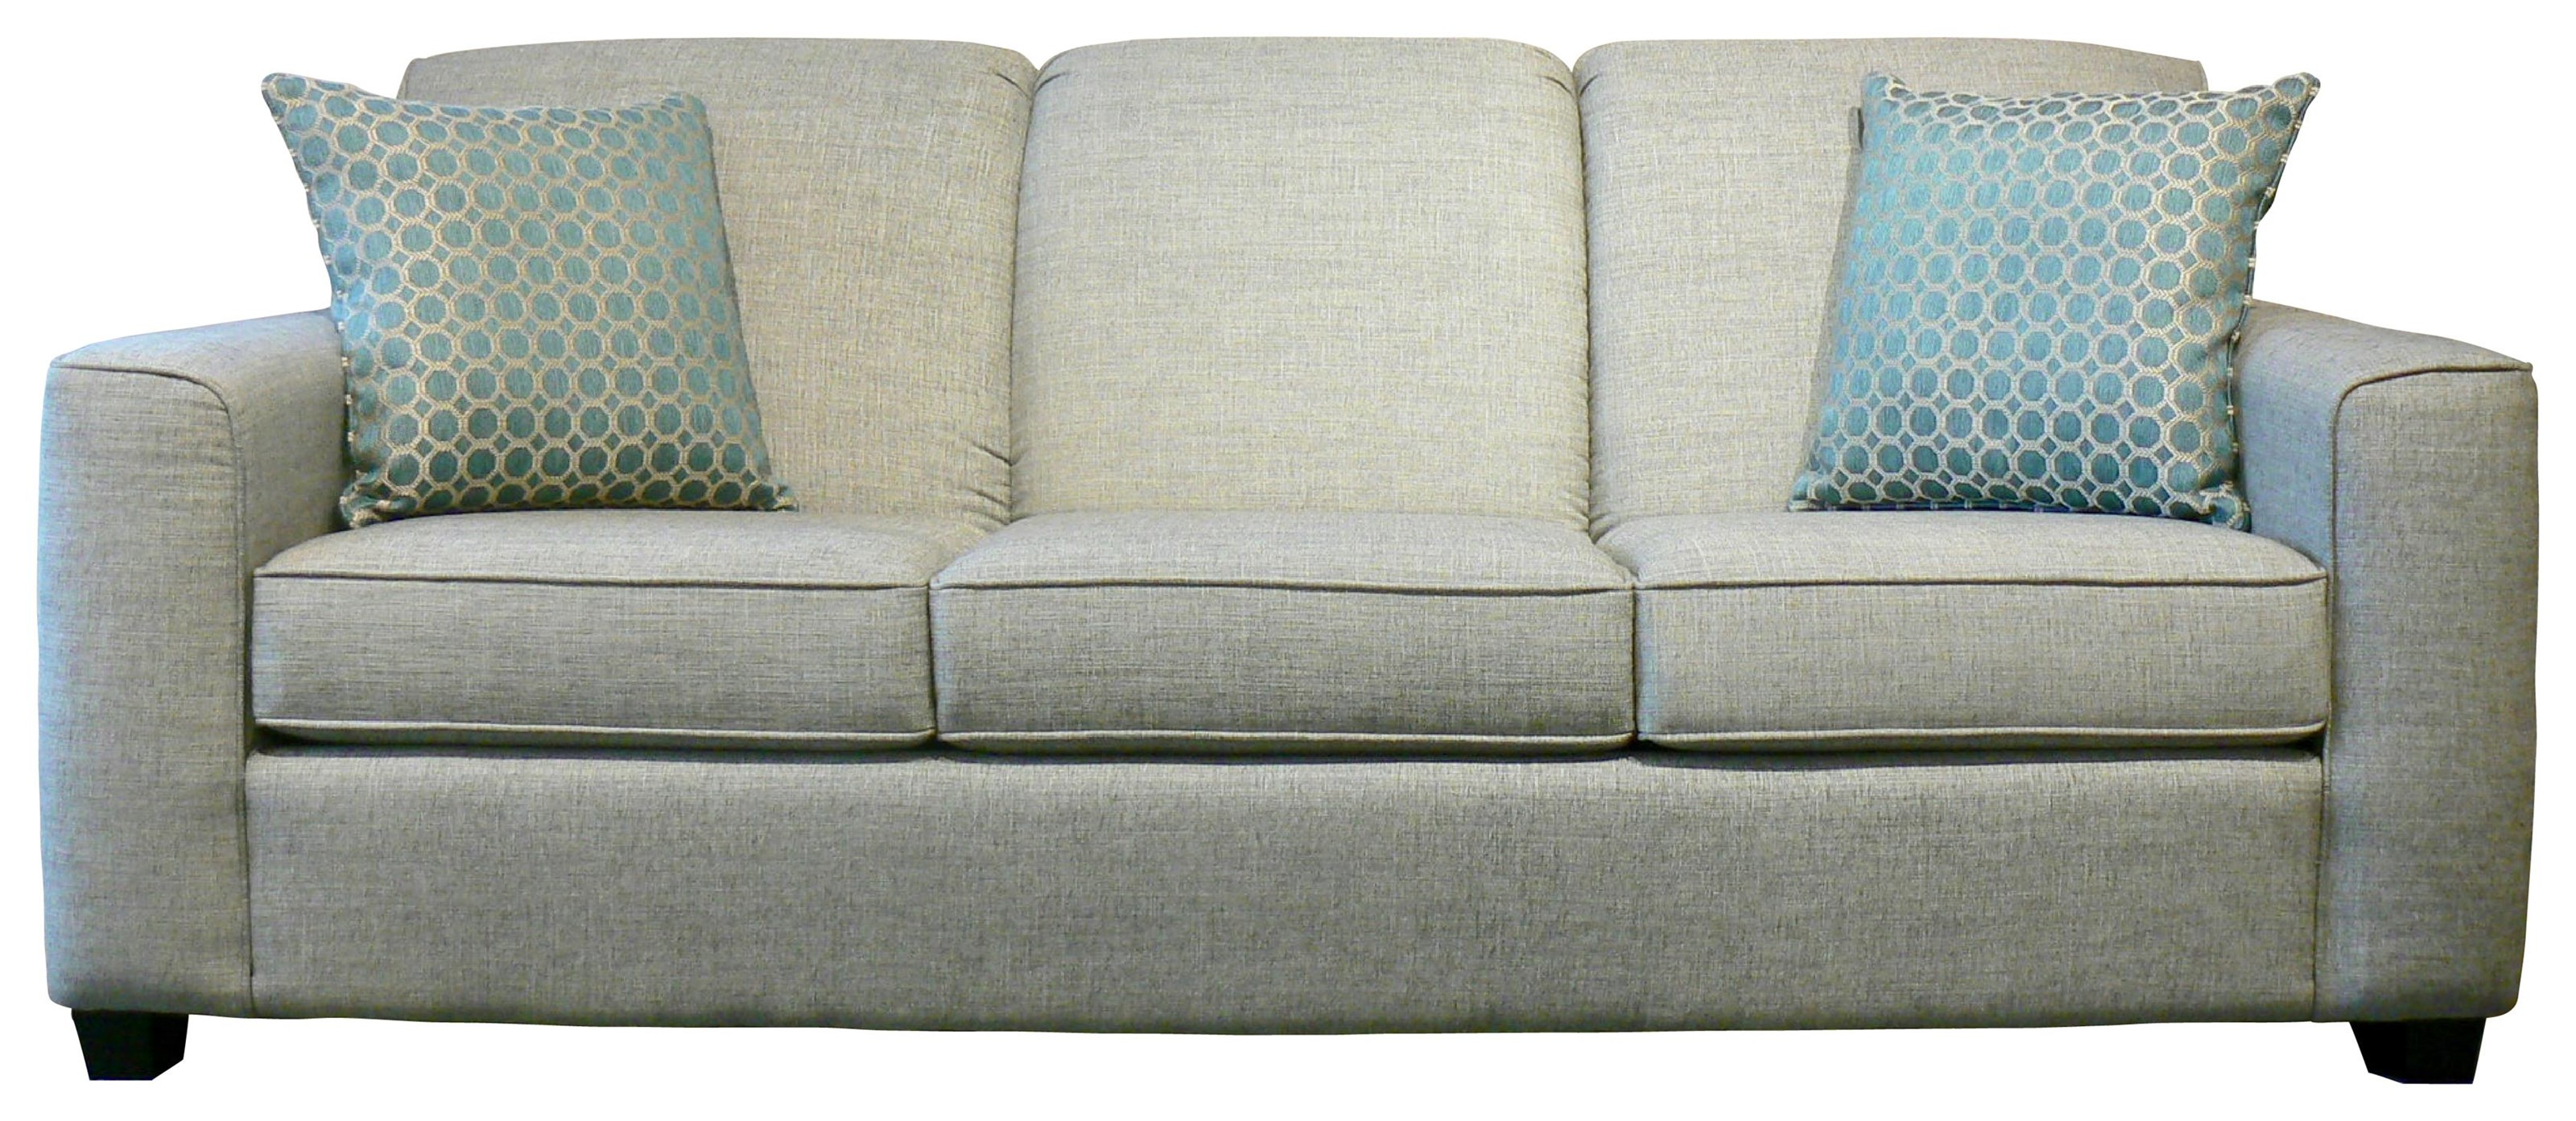 Tao Sofa by Taelor Designs at Bennett's Furniture and Mattresses